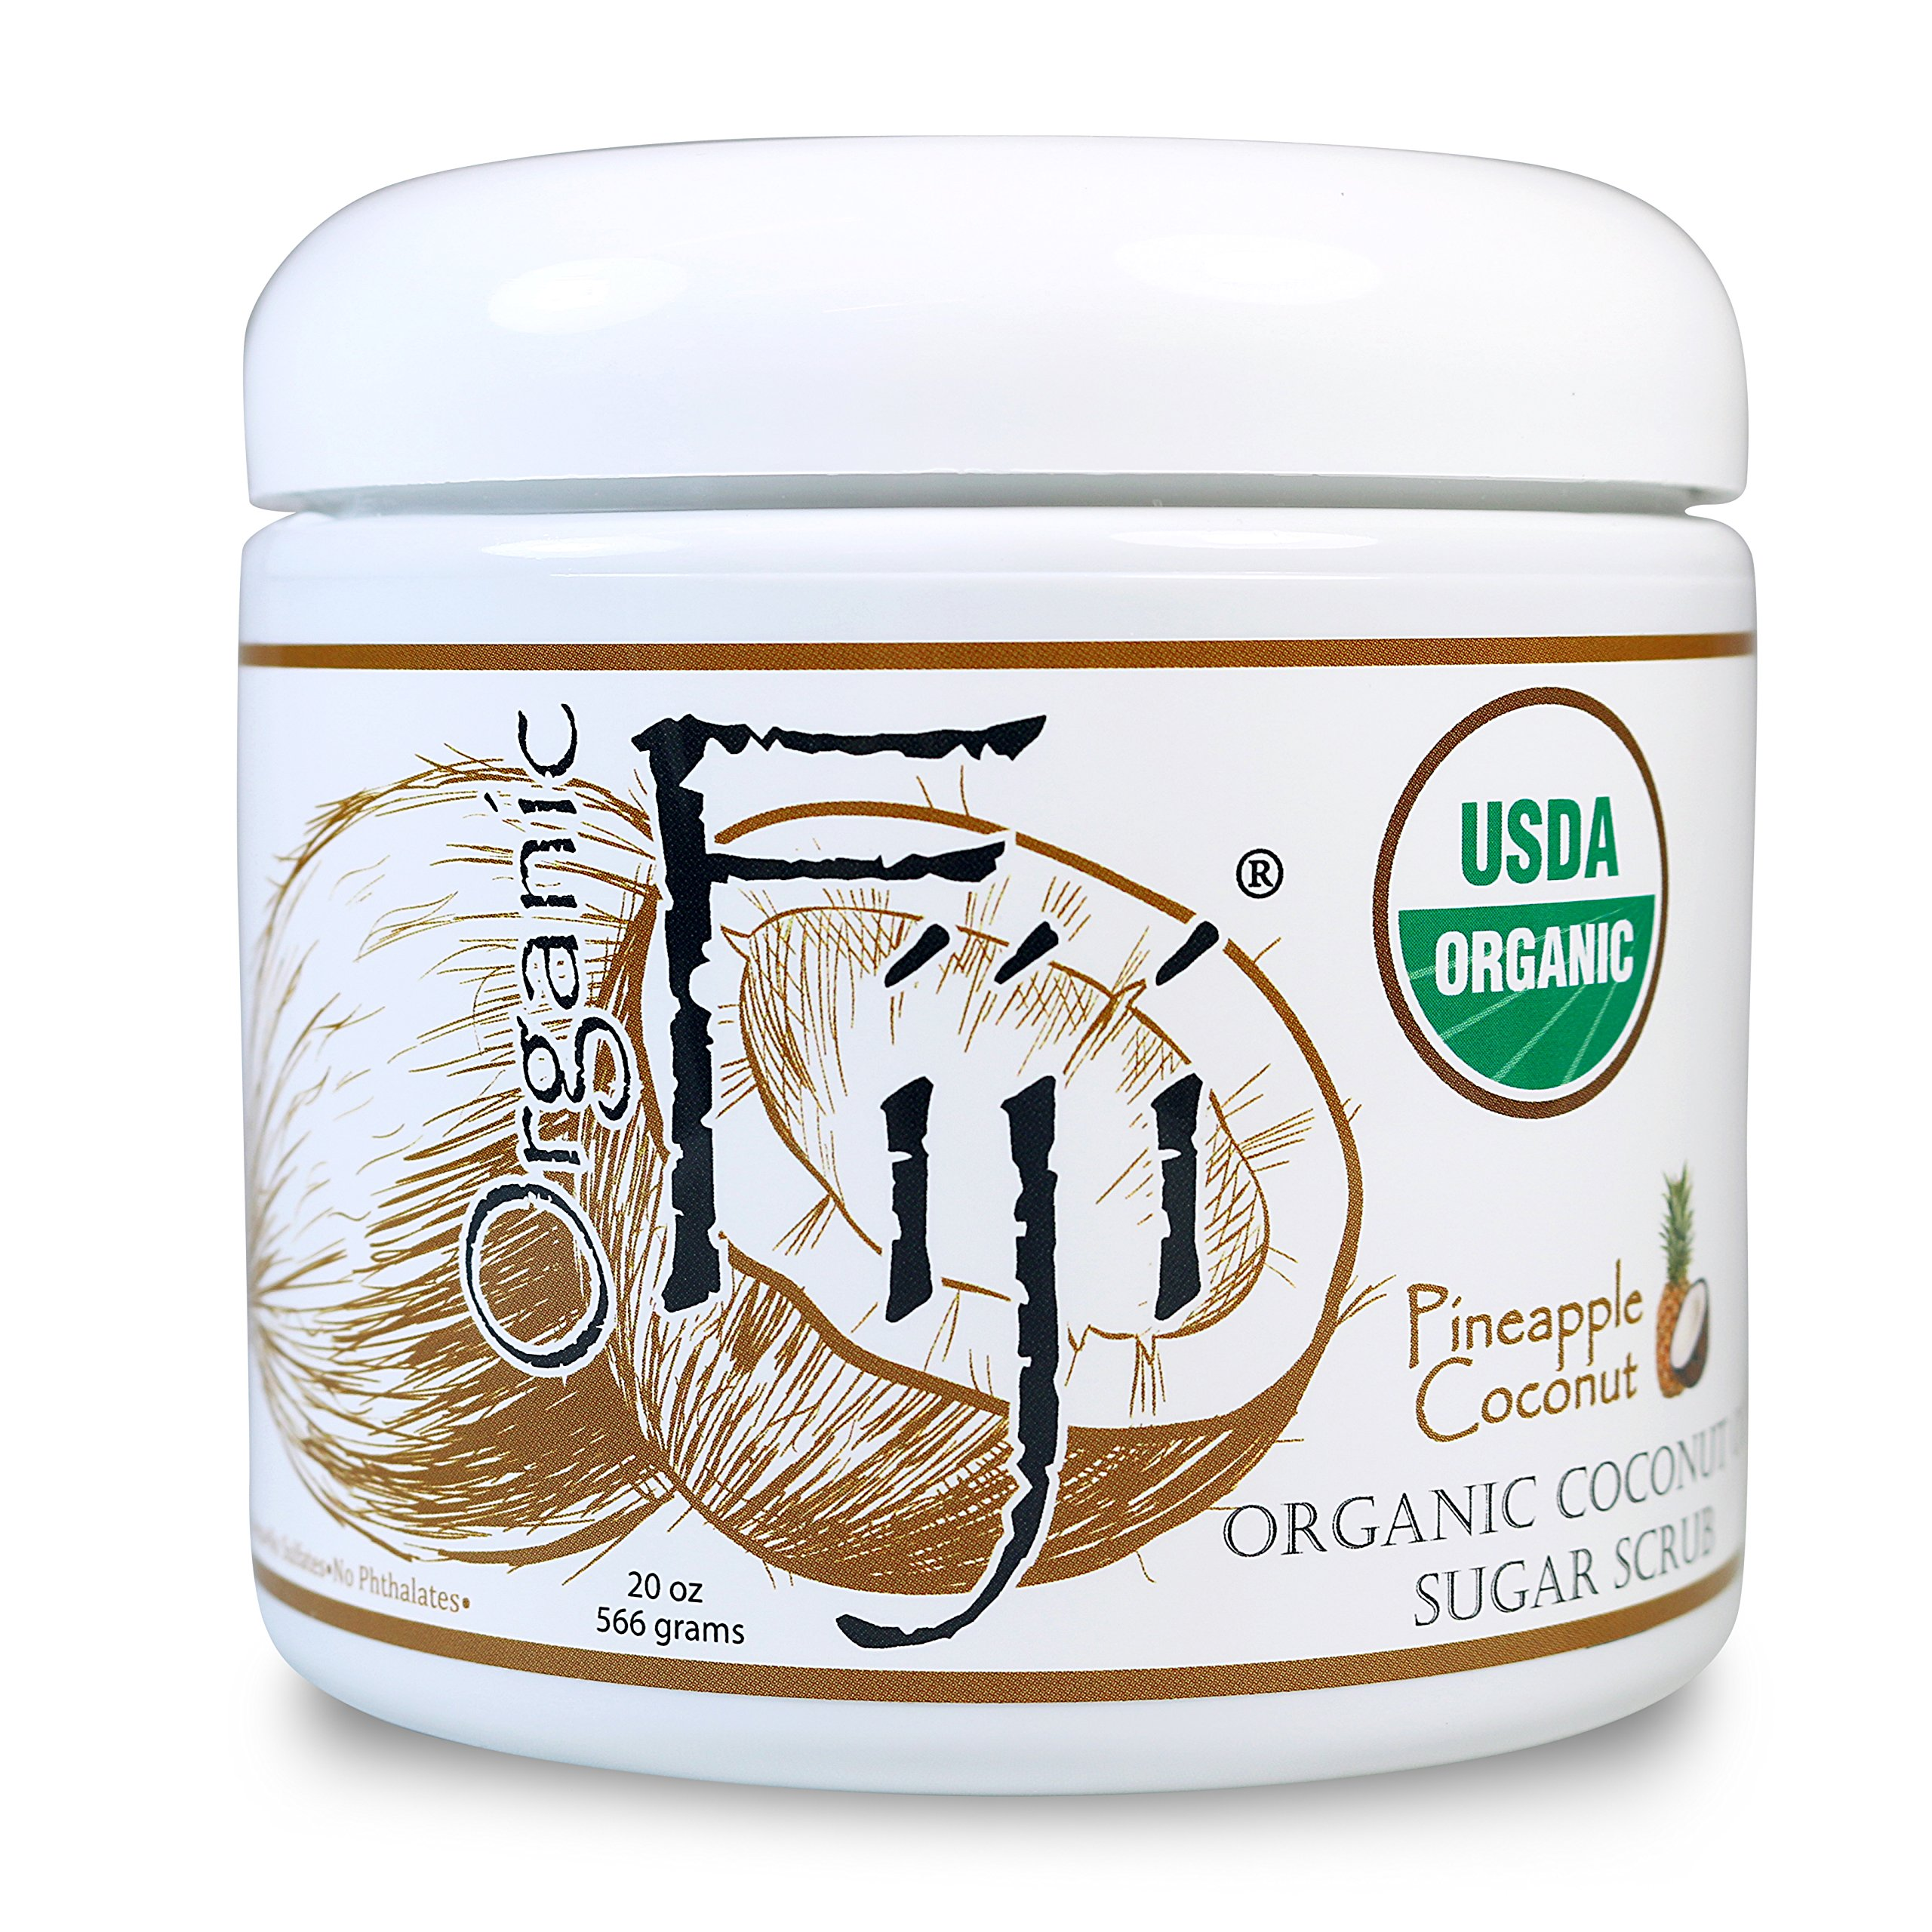 Organic Fiji PINEAPPLE COCONUT Sugar Scrub 20-Ounces for Face & Body by Organic Fiji (Image #1)